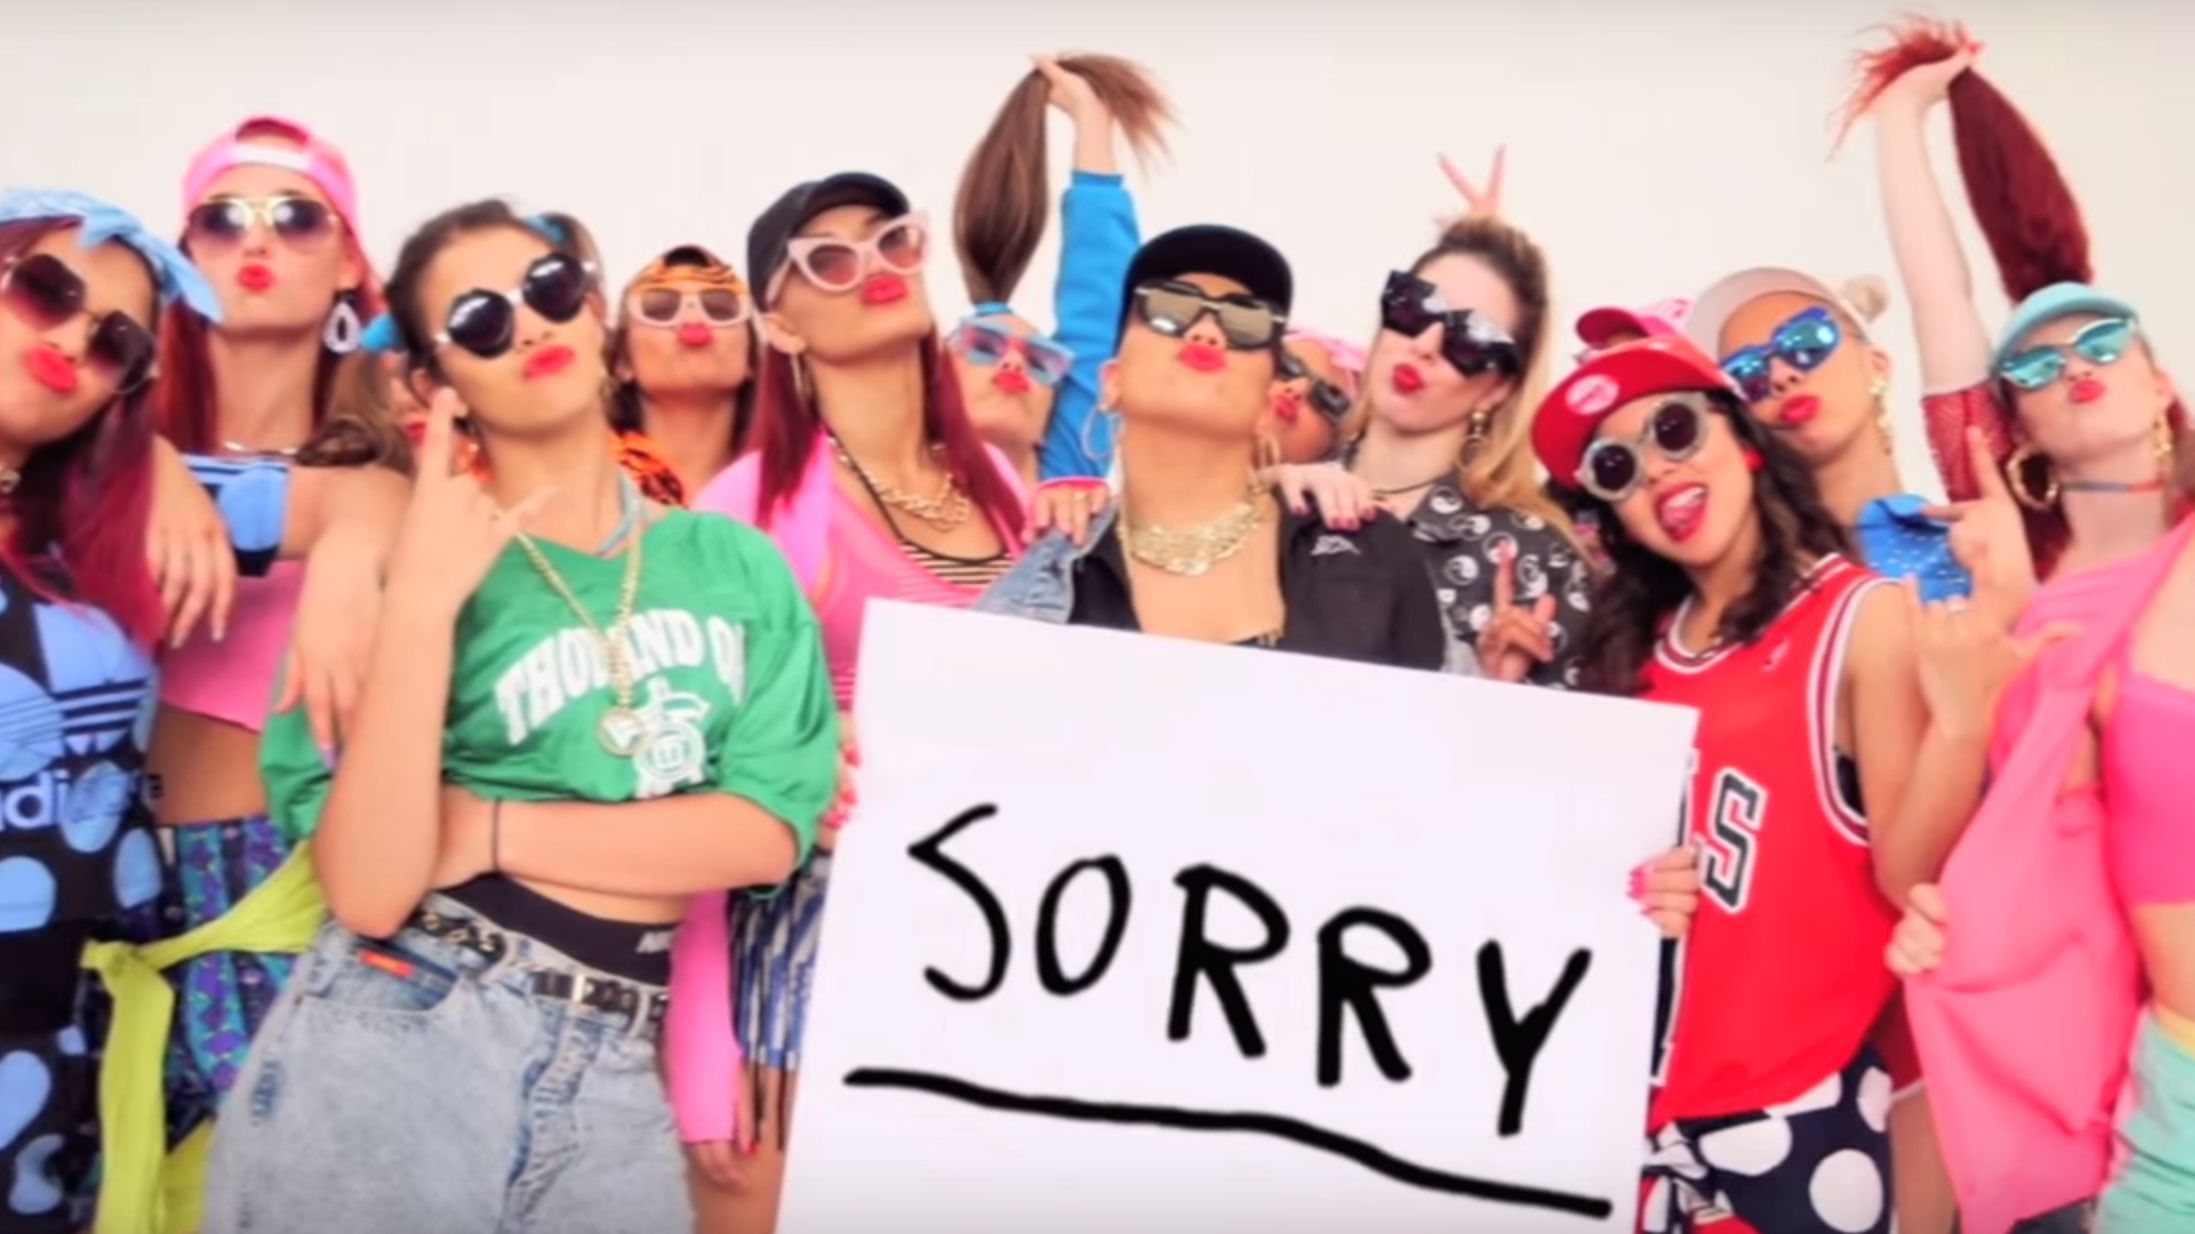 Justin Bieber's Epic Sorry' Video: All-Girl Dance Crews and '90sNeon